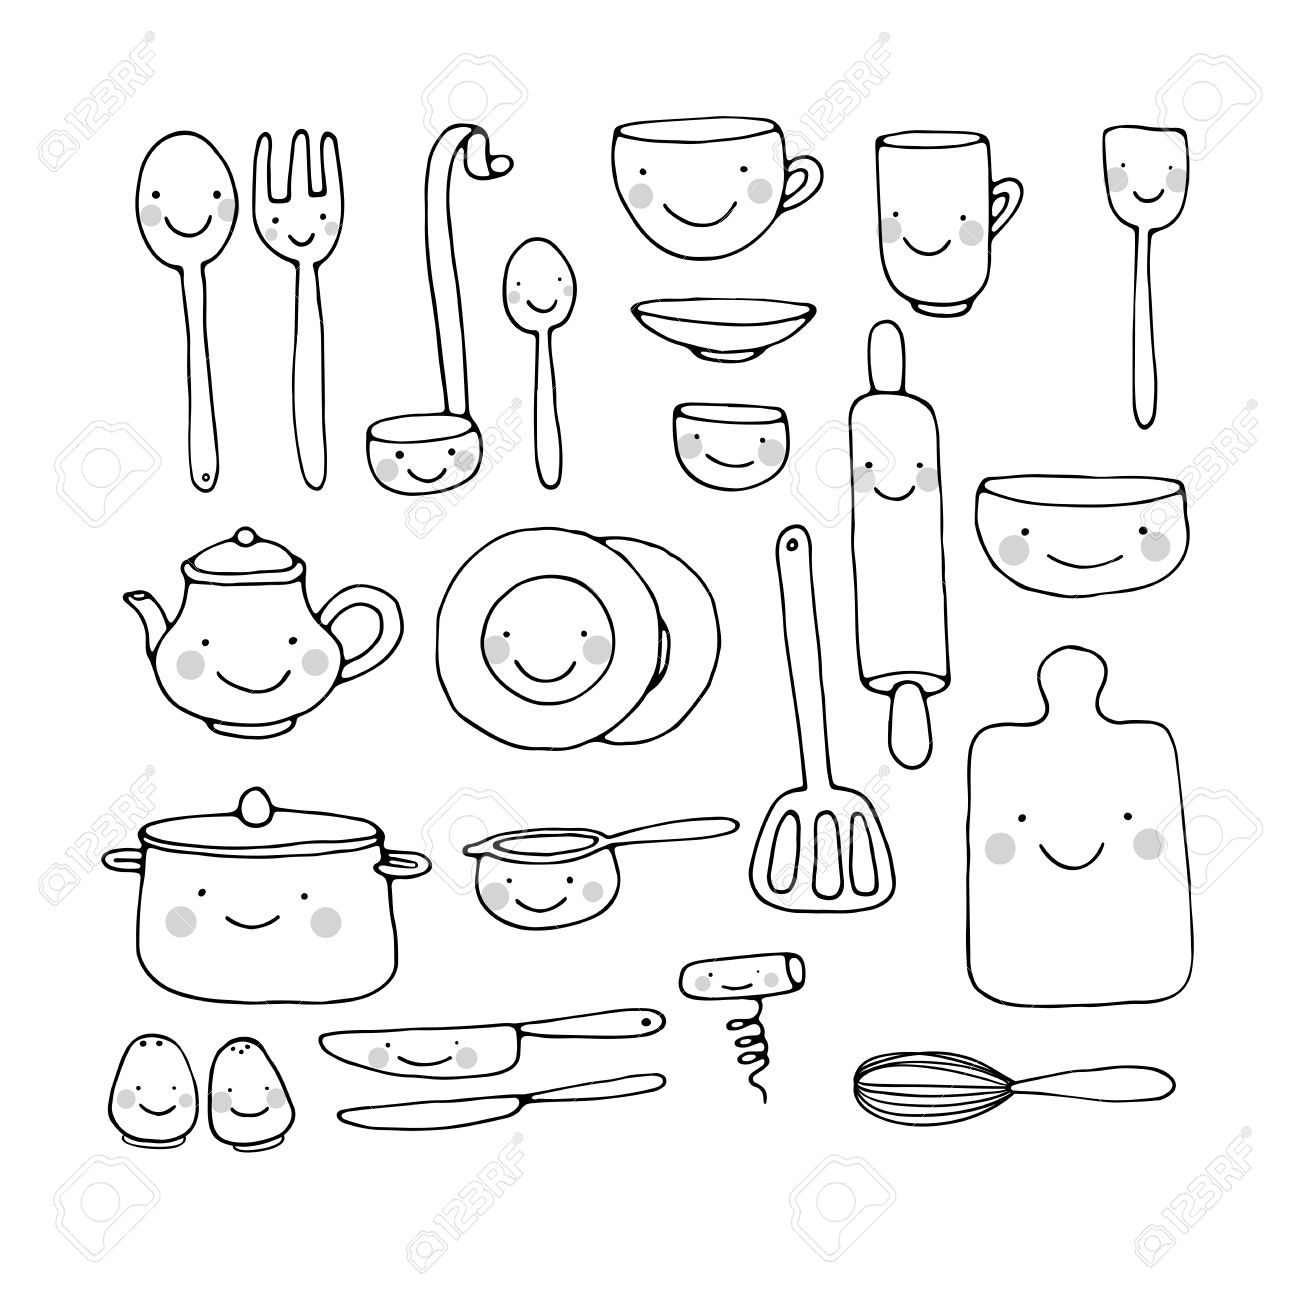 A Set Of Kitchen Utensils. Hand Drawing Isolated Objects On White ...